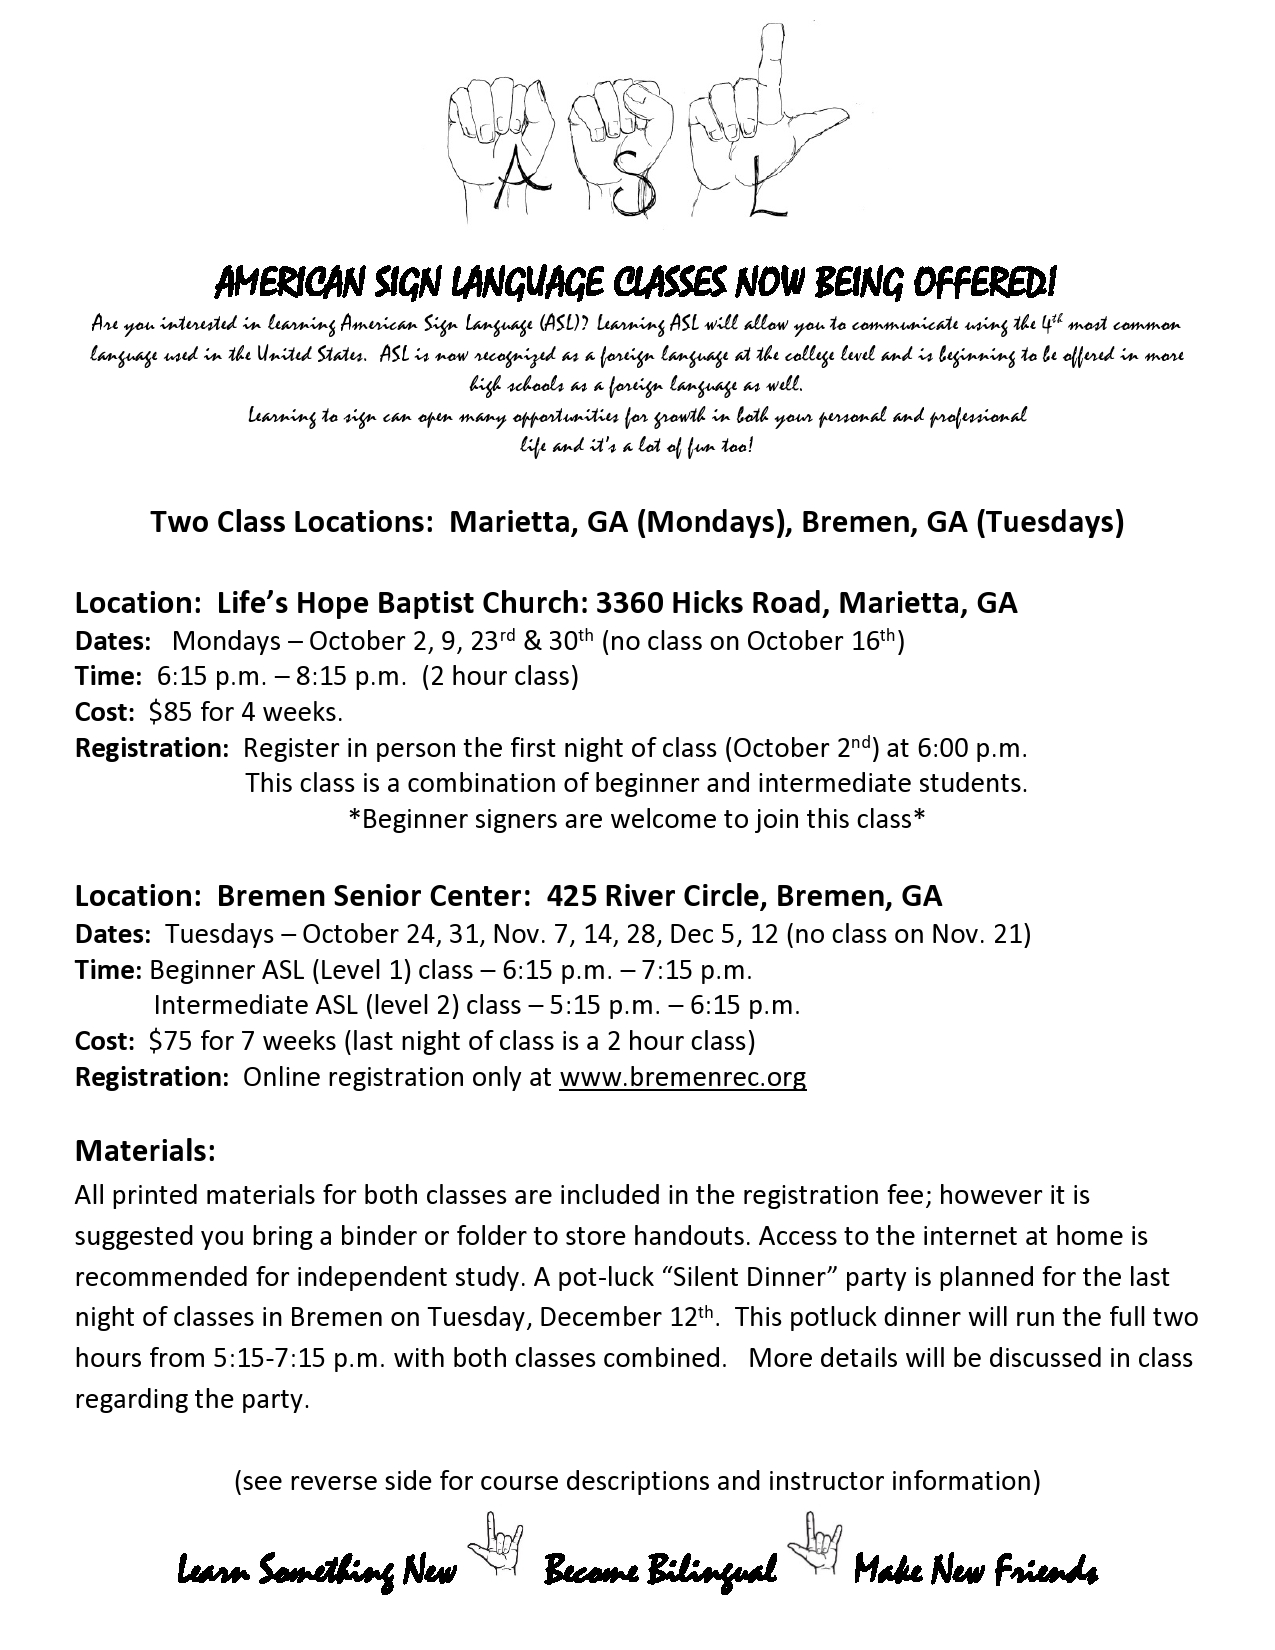 oct 30 american sign language classes offered in marietta